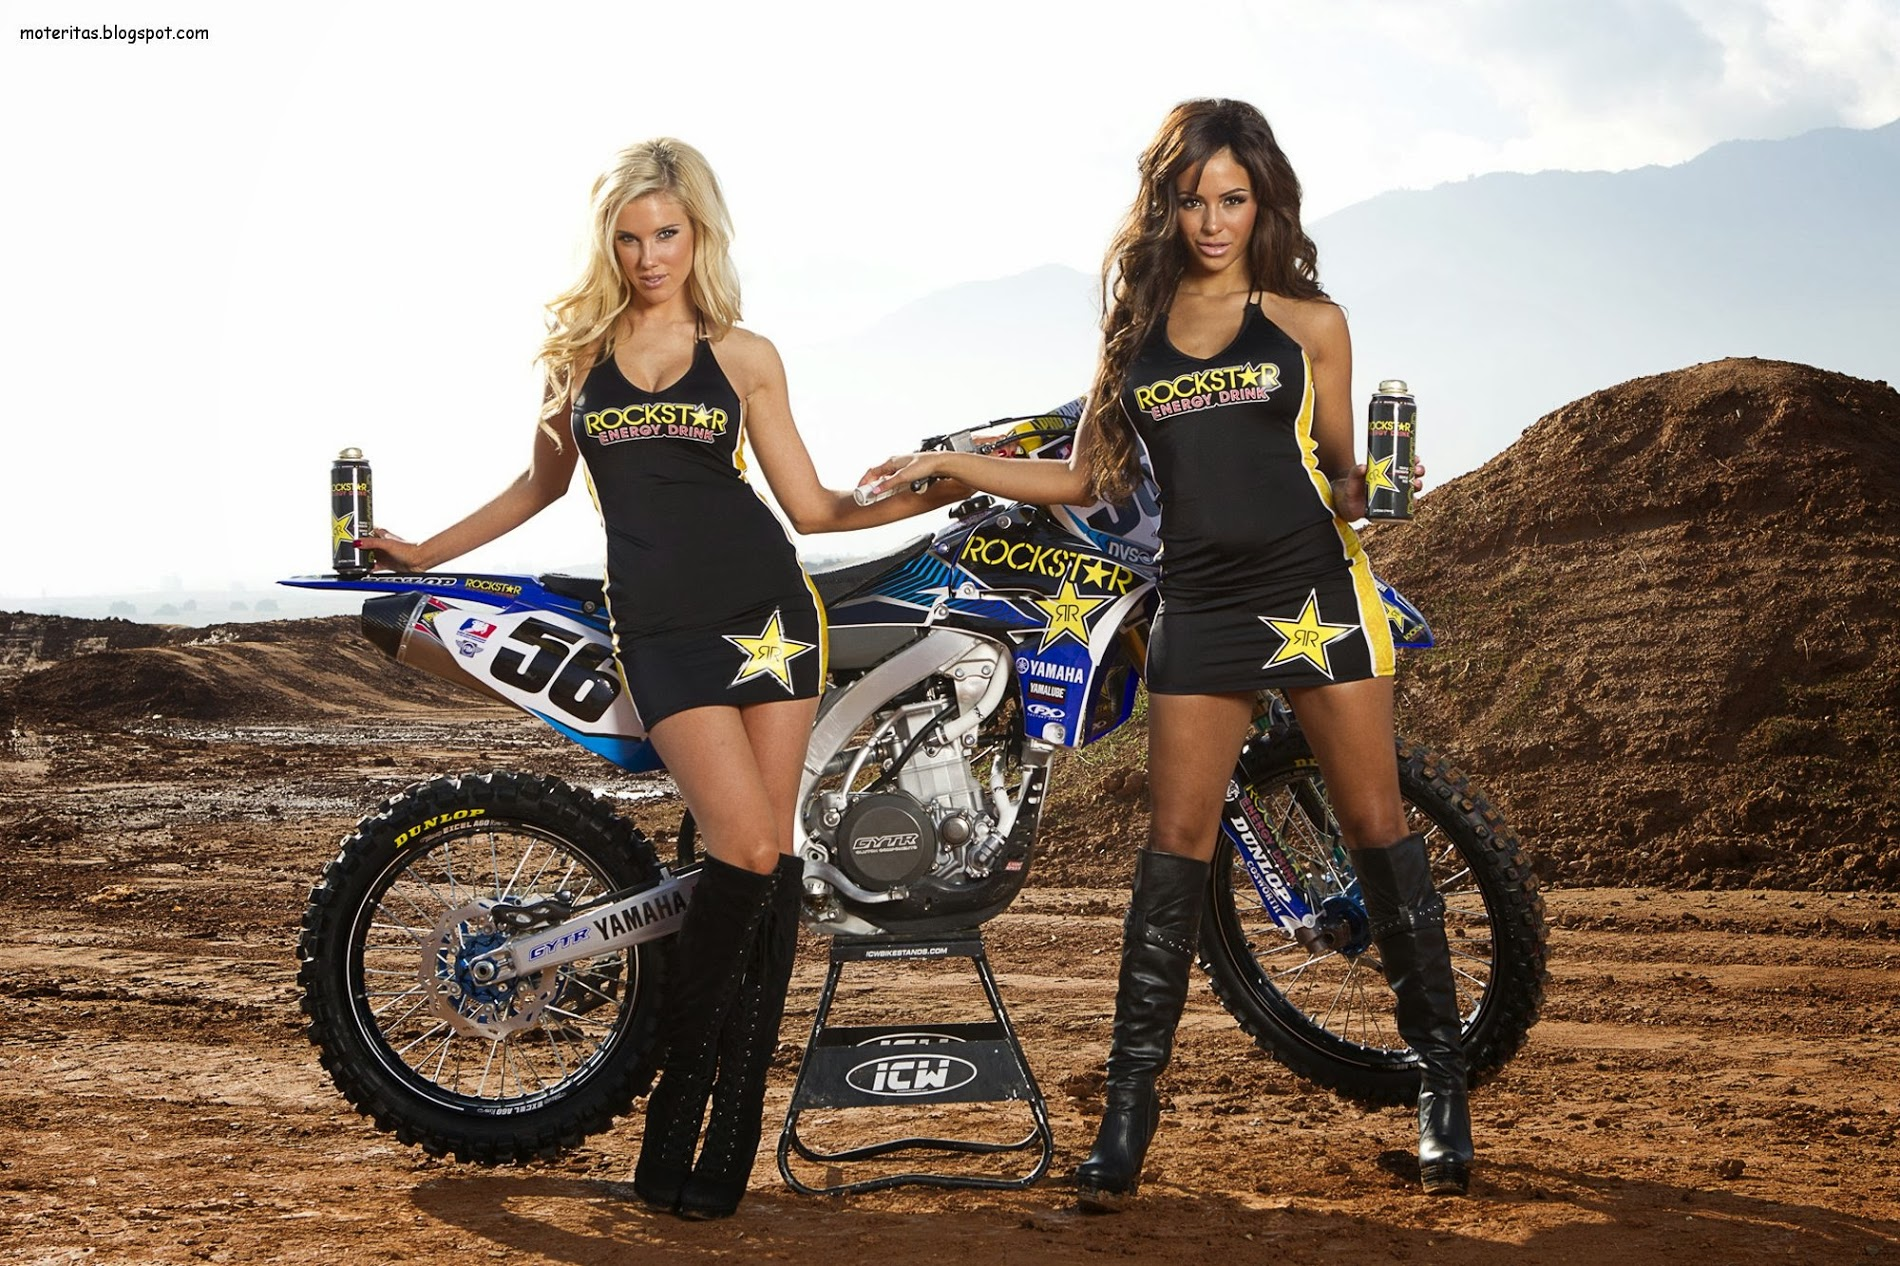 supercross motorcycle bike girls woman blonde hd pc desktop wallpaper 1900x1266